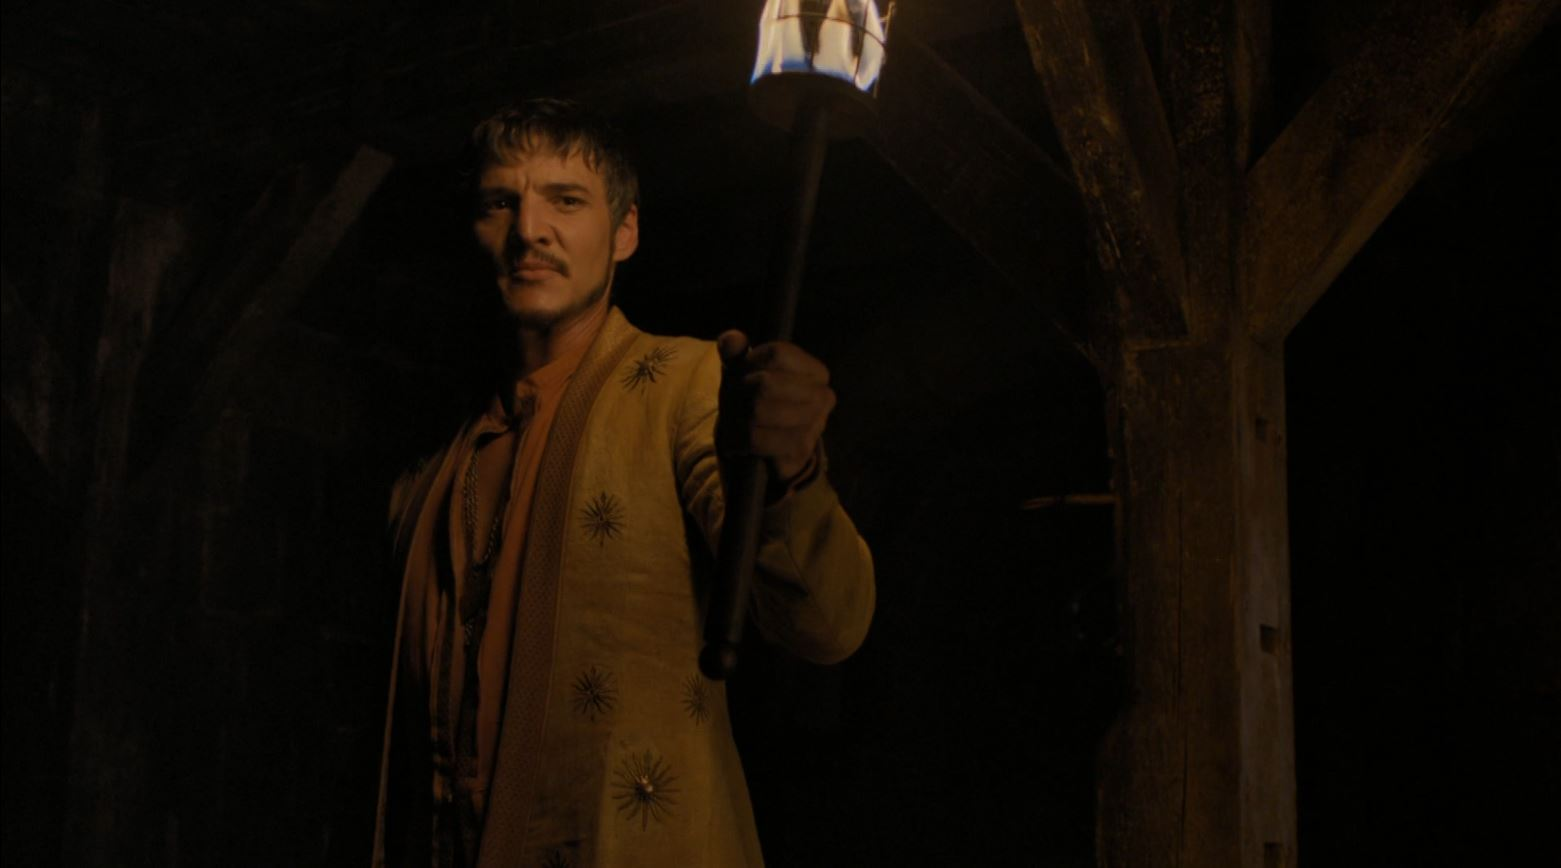 https://i2.wp.com/scifiempire.net/wordpress/wp-content/uploads/2014/05/Game-Of-Thrones-S4Ep7-Mockingbird-Review-Pedro-Pascal-as-Oberyn-Martell-offers-to-be-the-Champion.jpg